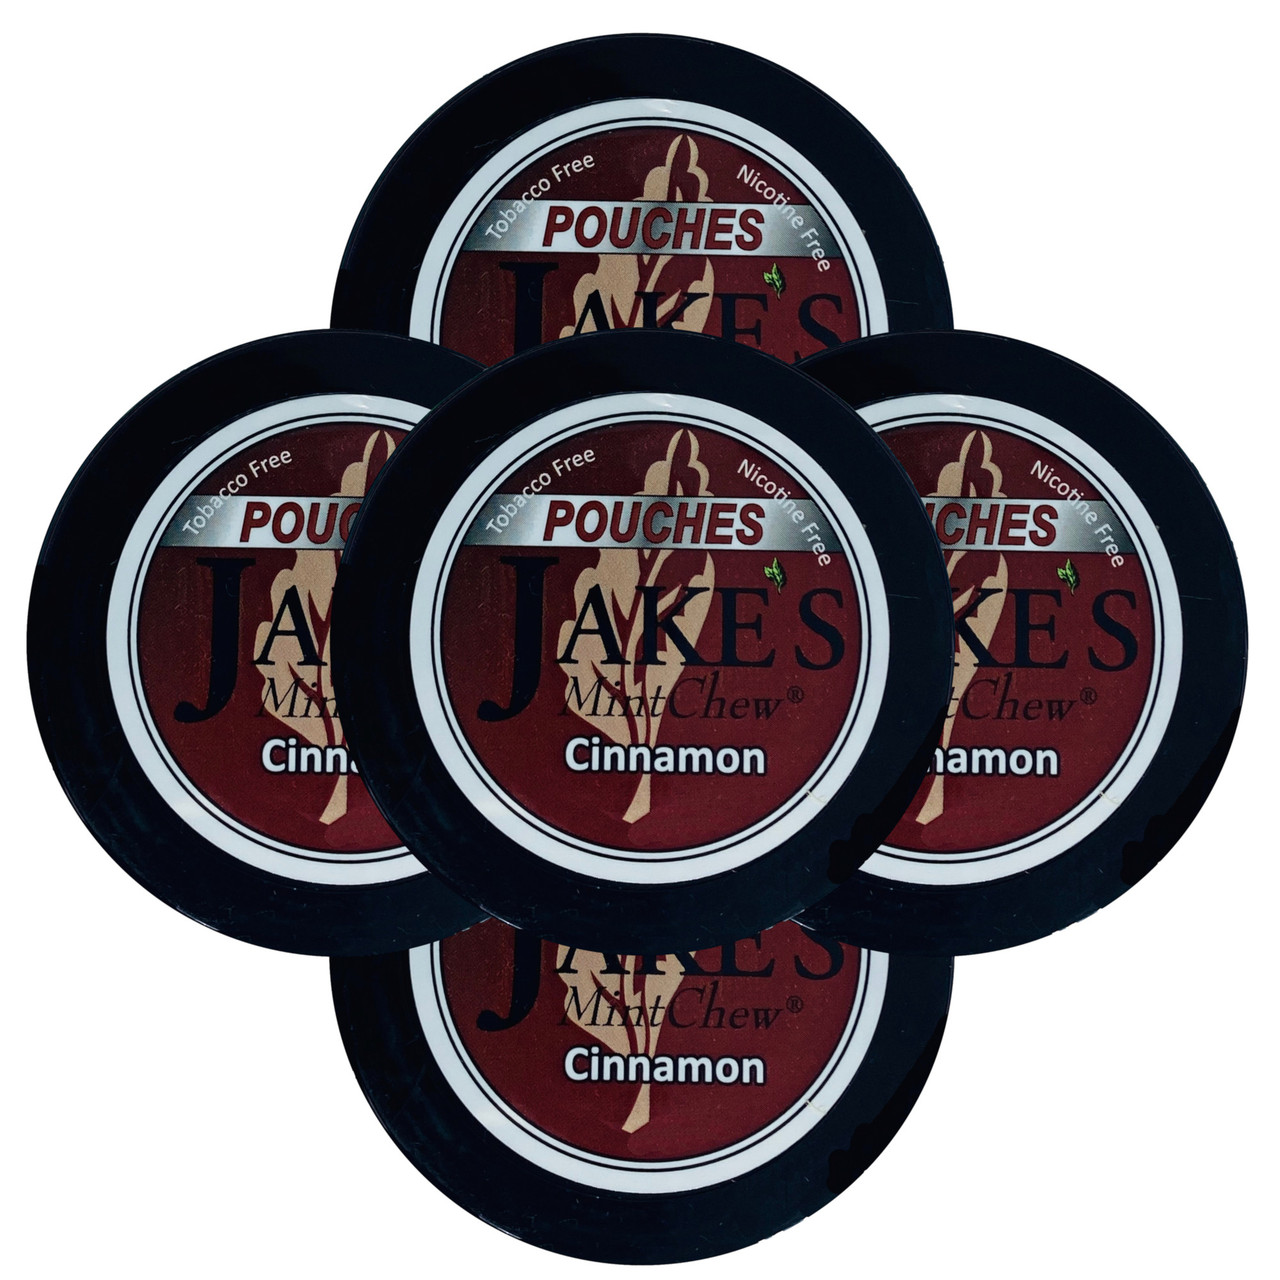 Jake's Mint Herbal Chew Pouches Cinnamon 5 Cans